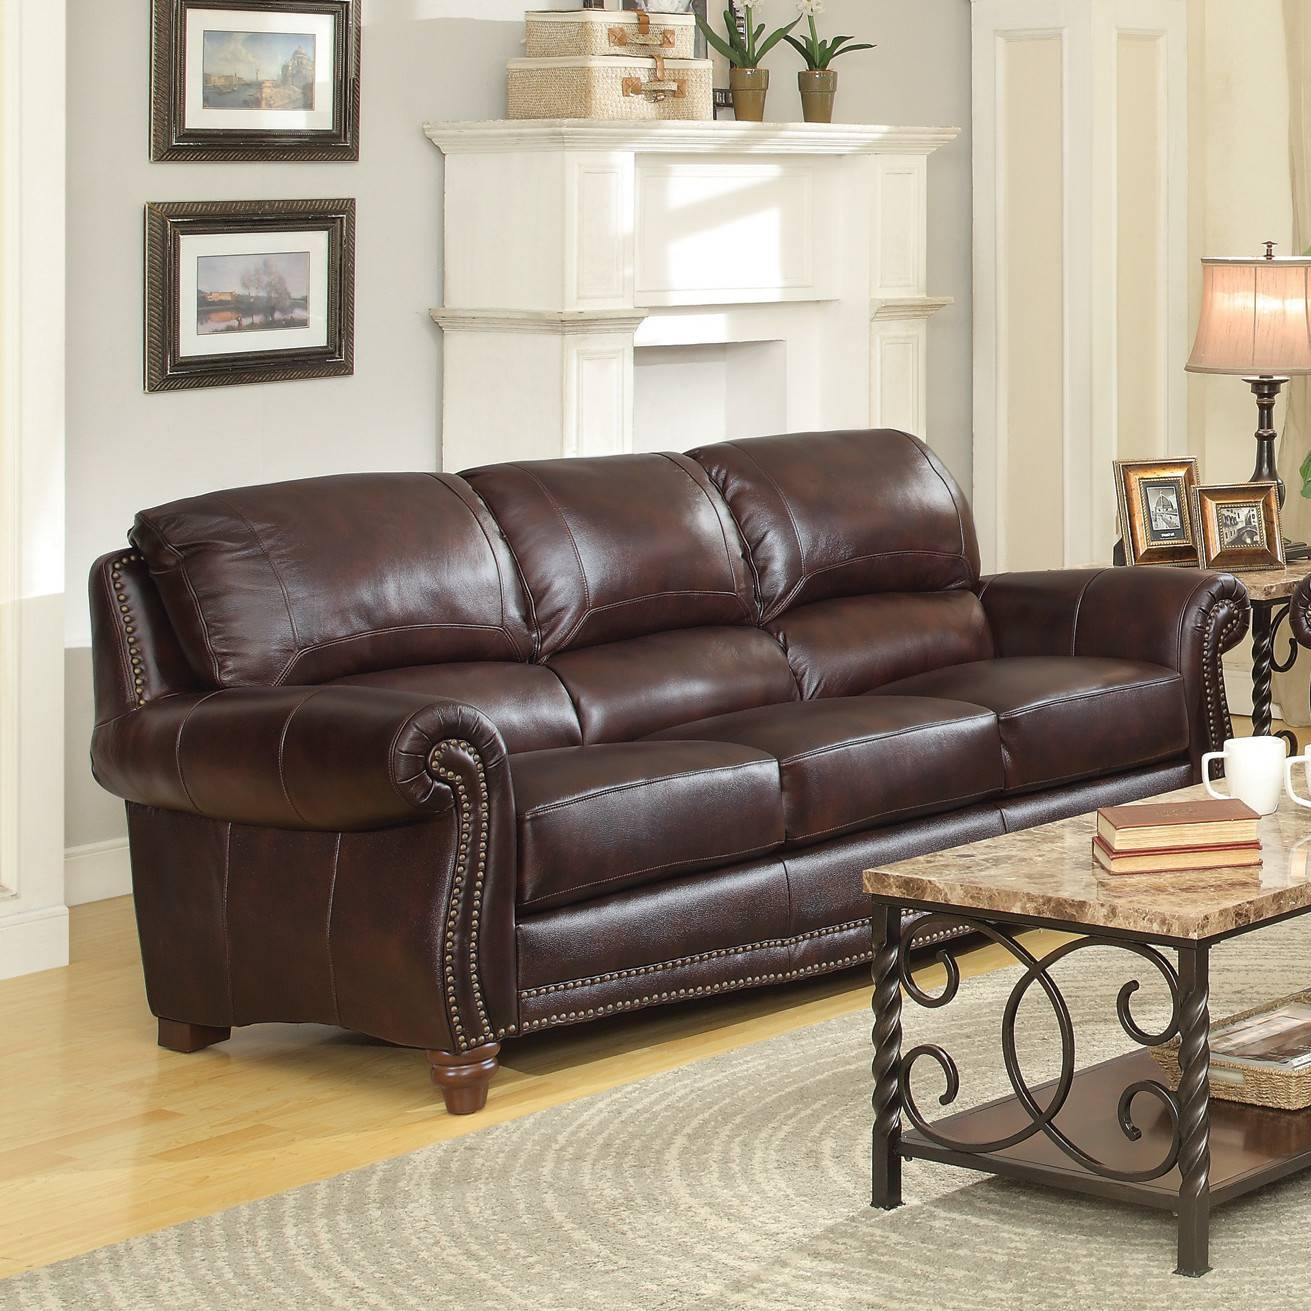 Lovely Camelback Leather Sofa Time Out 78 For Your Sofa Design within Camelback Leather Sofas (Image 10 of 15)